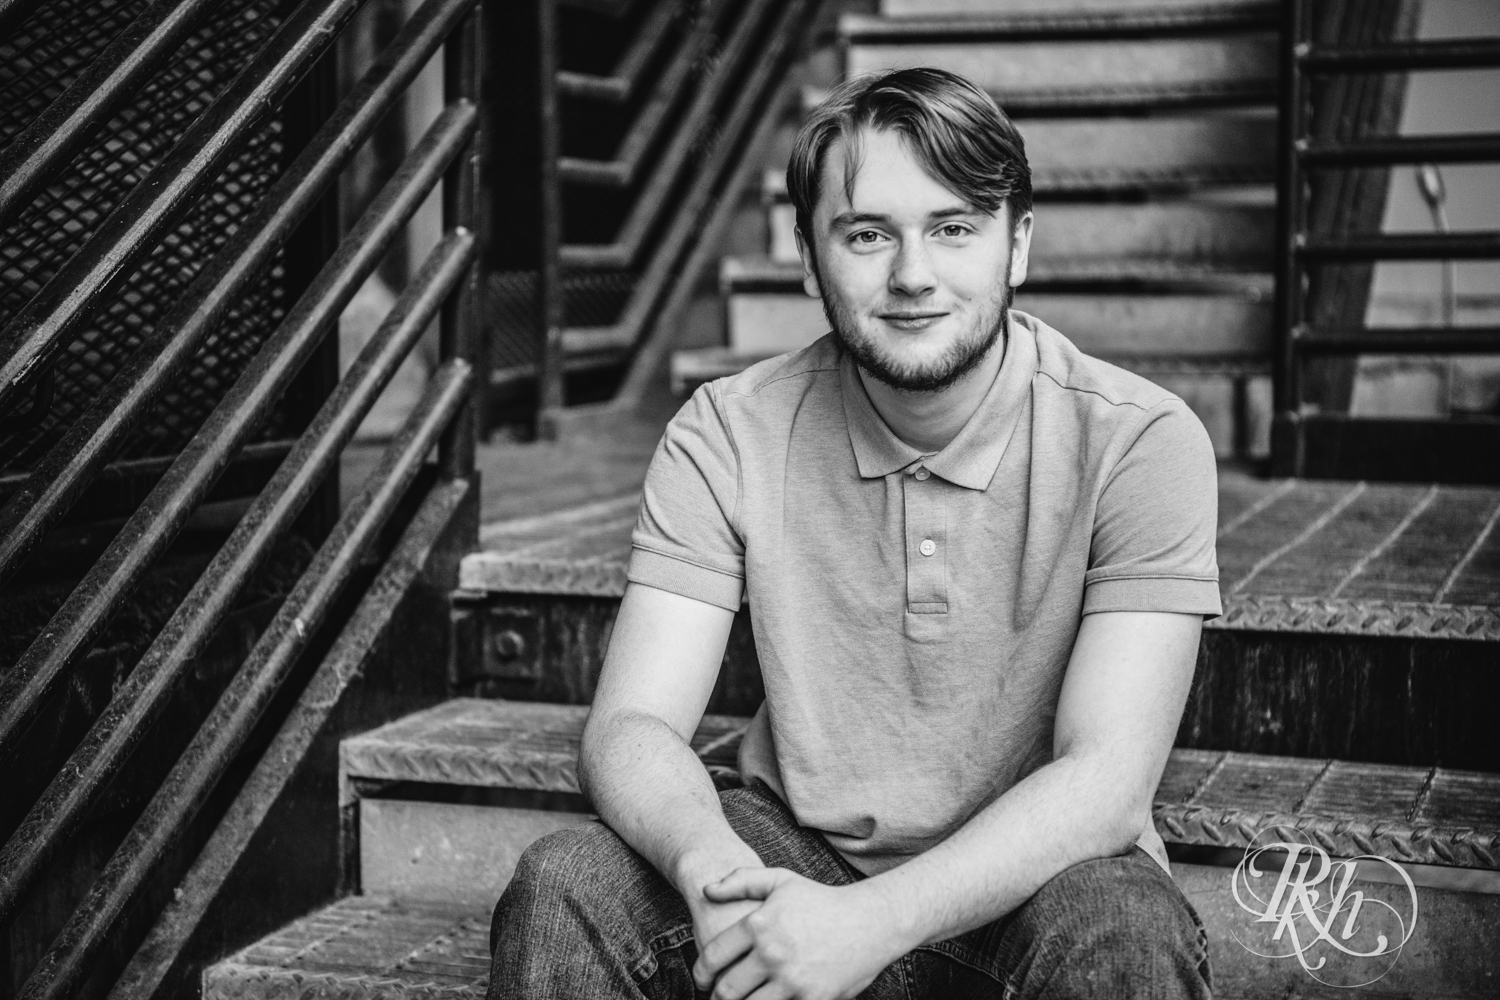 Kevin - Minnesota Senior Photography - Class of 2019 - Mill City Ruins -  RKH Images  (5 of 9).jpg